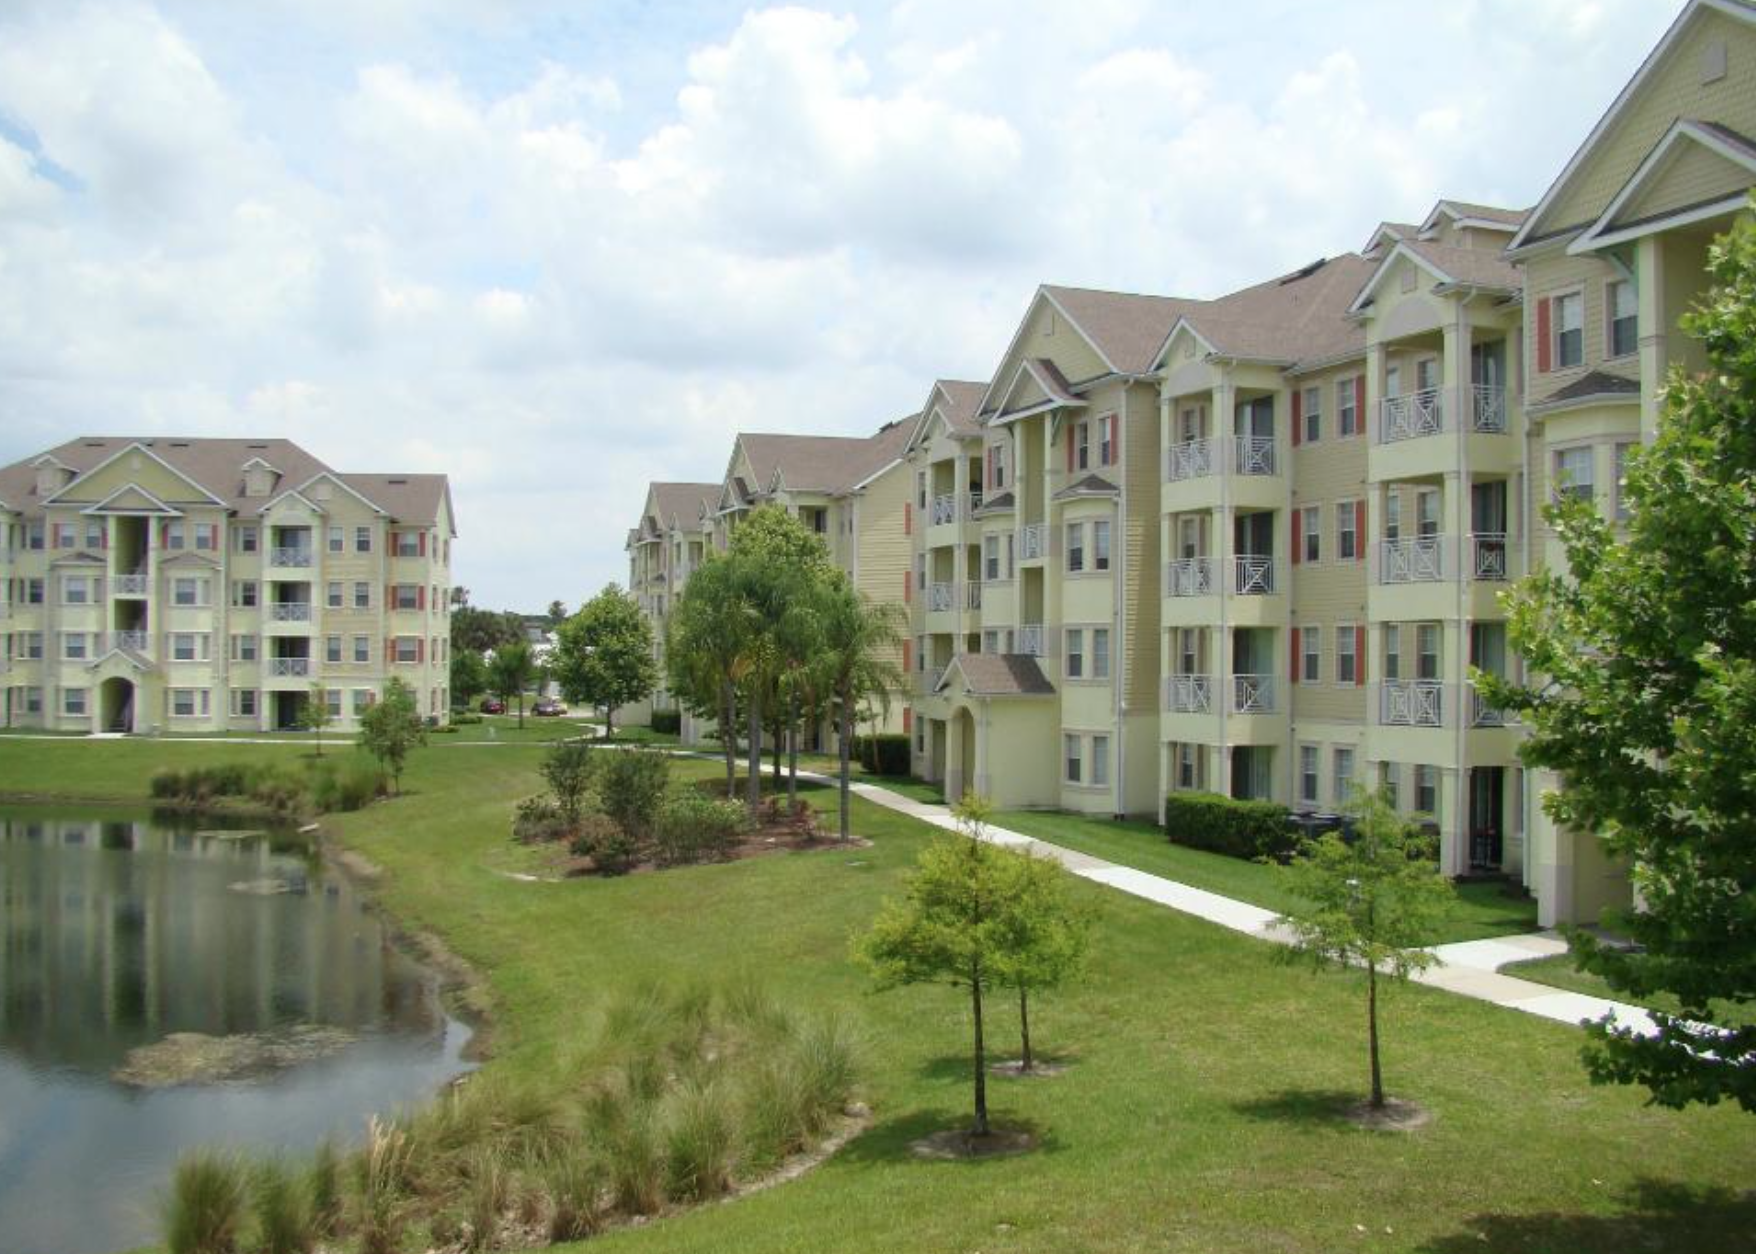 The Grass Is Greener On Our Side Cane Island Apartment Homes In Kissimmee Fl Www Caneislandliving Com Cane Island House Styles Kissimmee